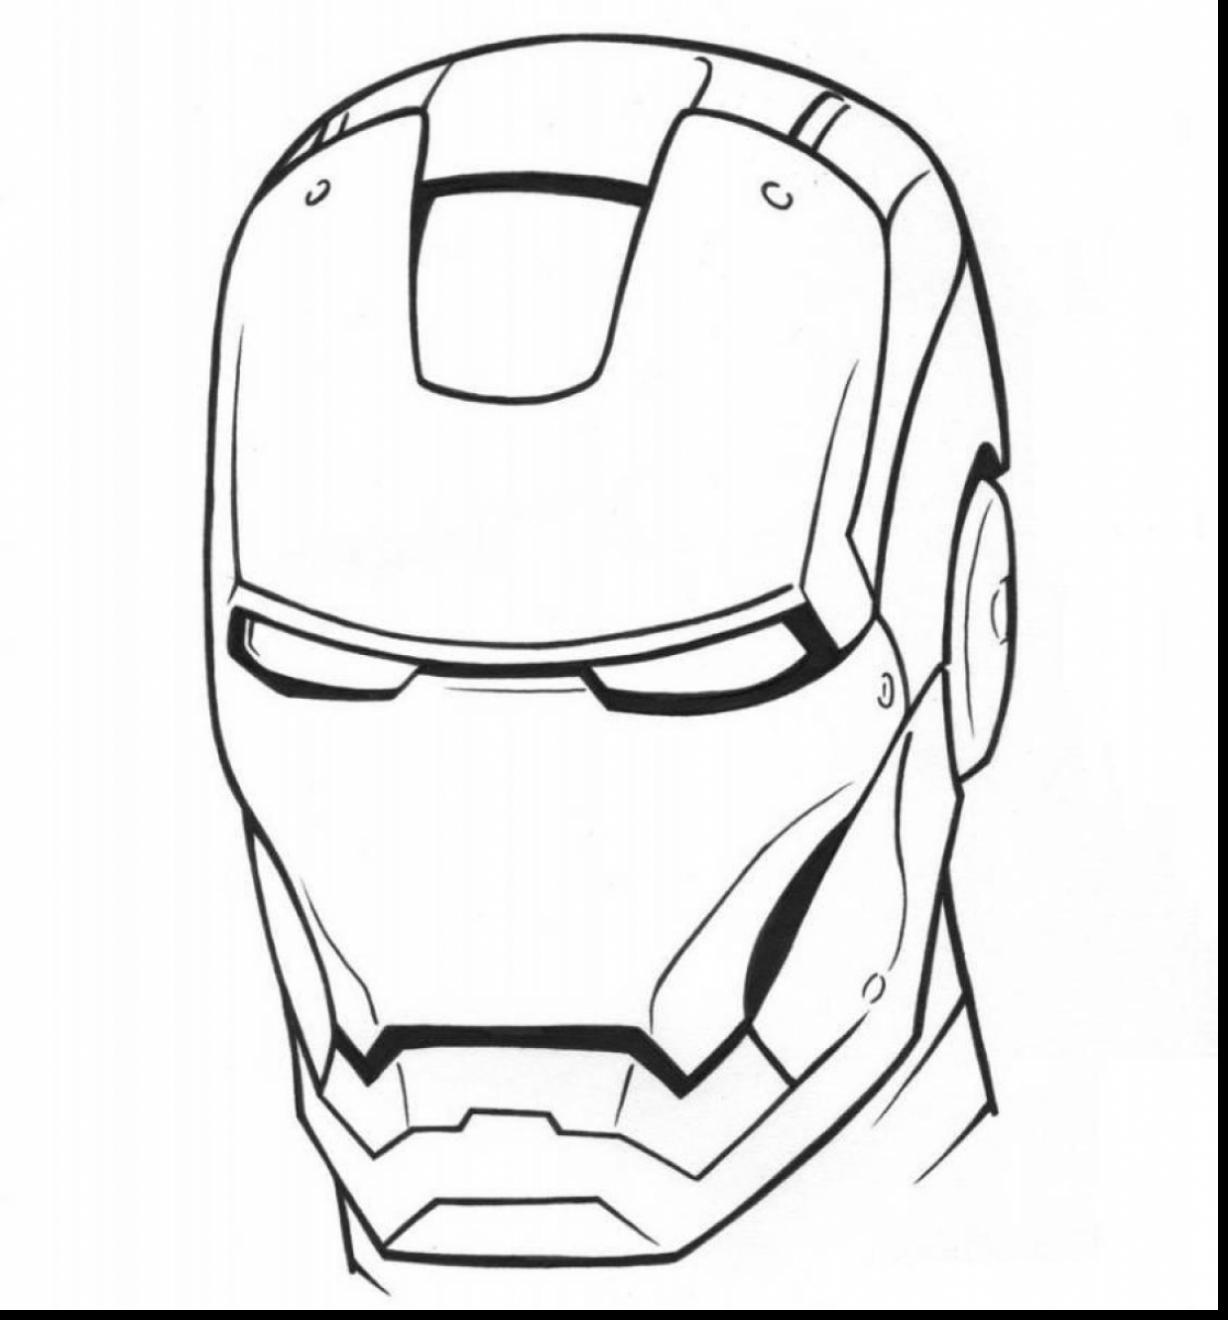 coloring iron man outline iron man outline drawing at getdrawings free download outline man iron coloring